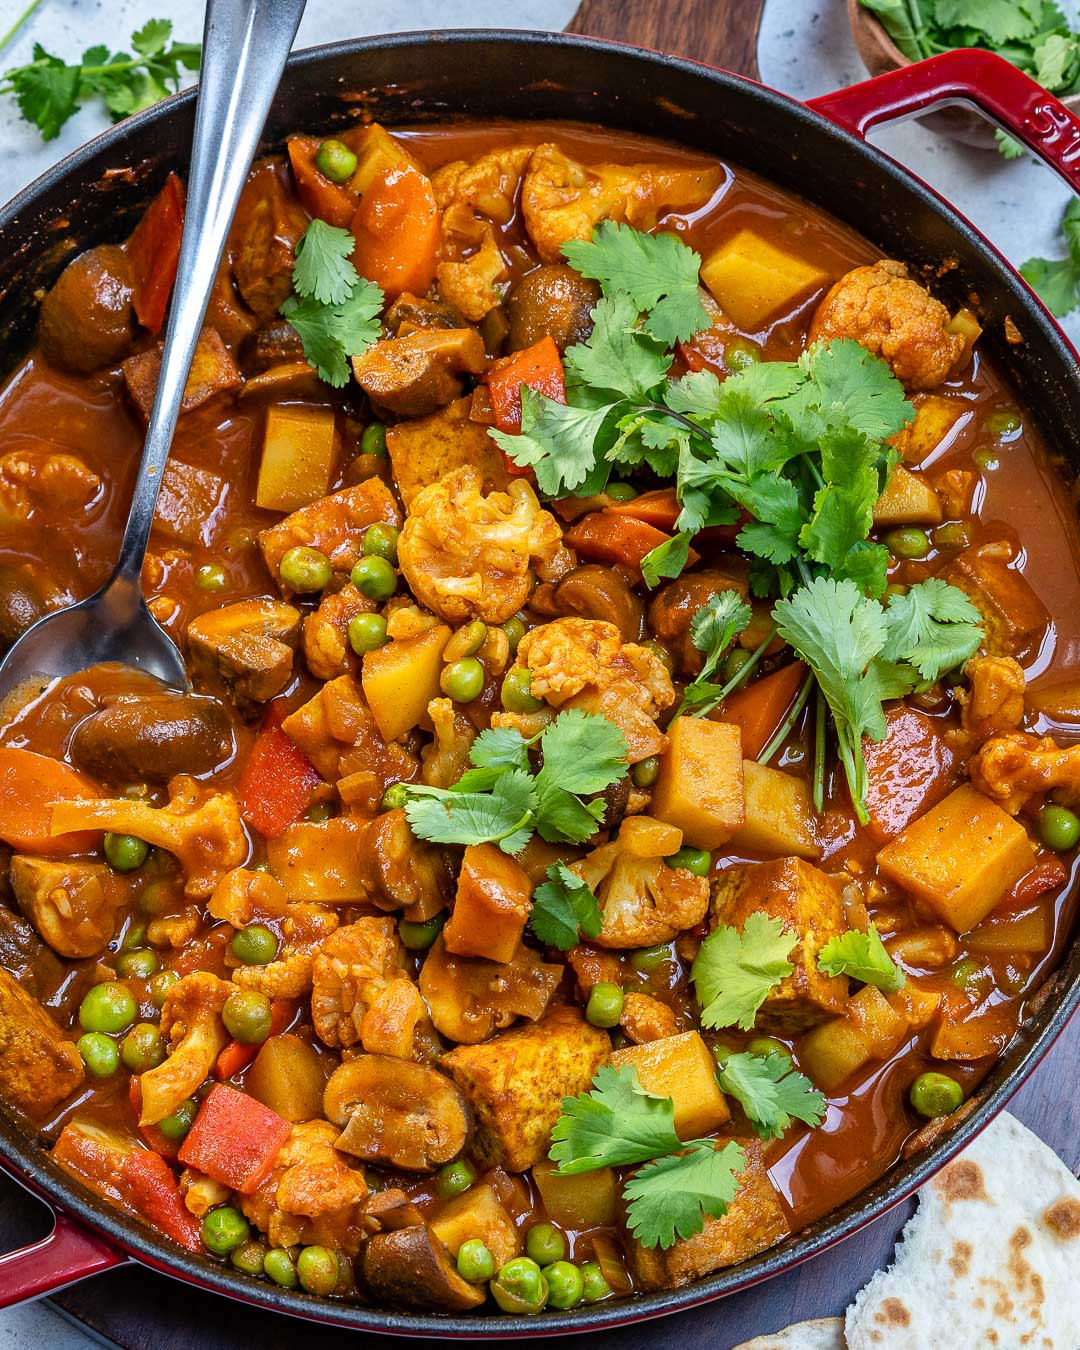 Vegan Tikka Masala Recipe With Tofu And Cauliflower-10